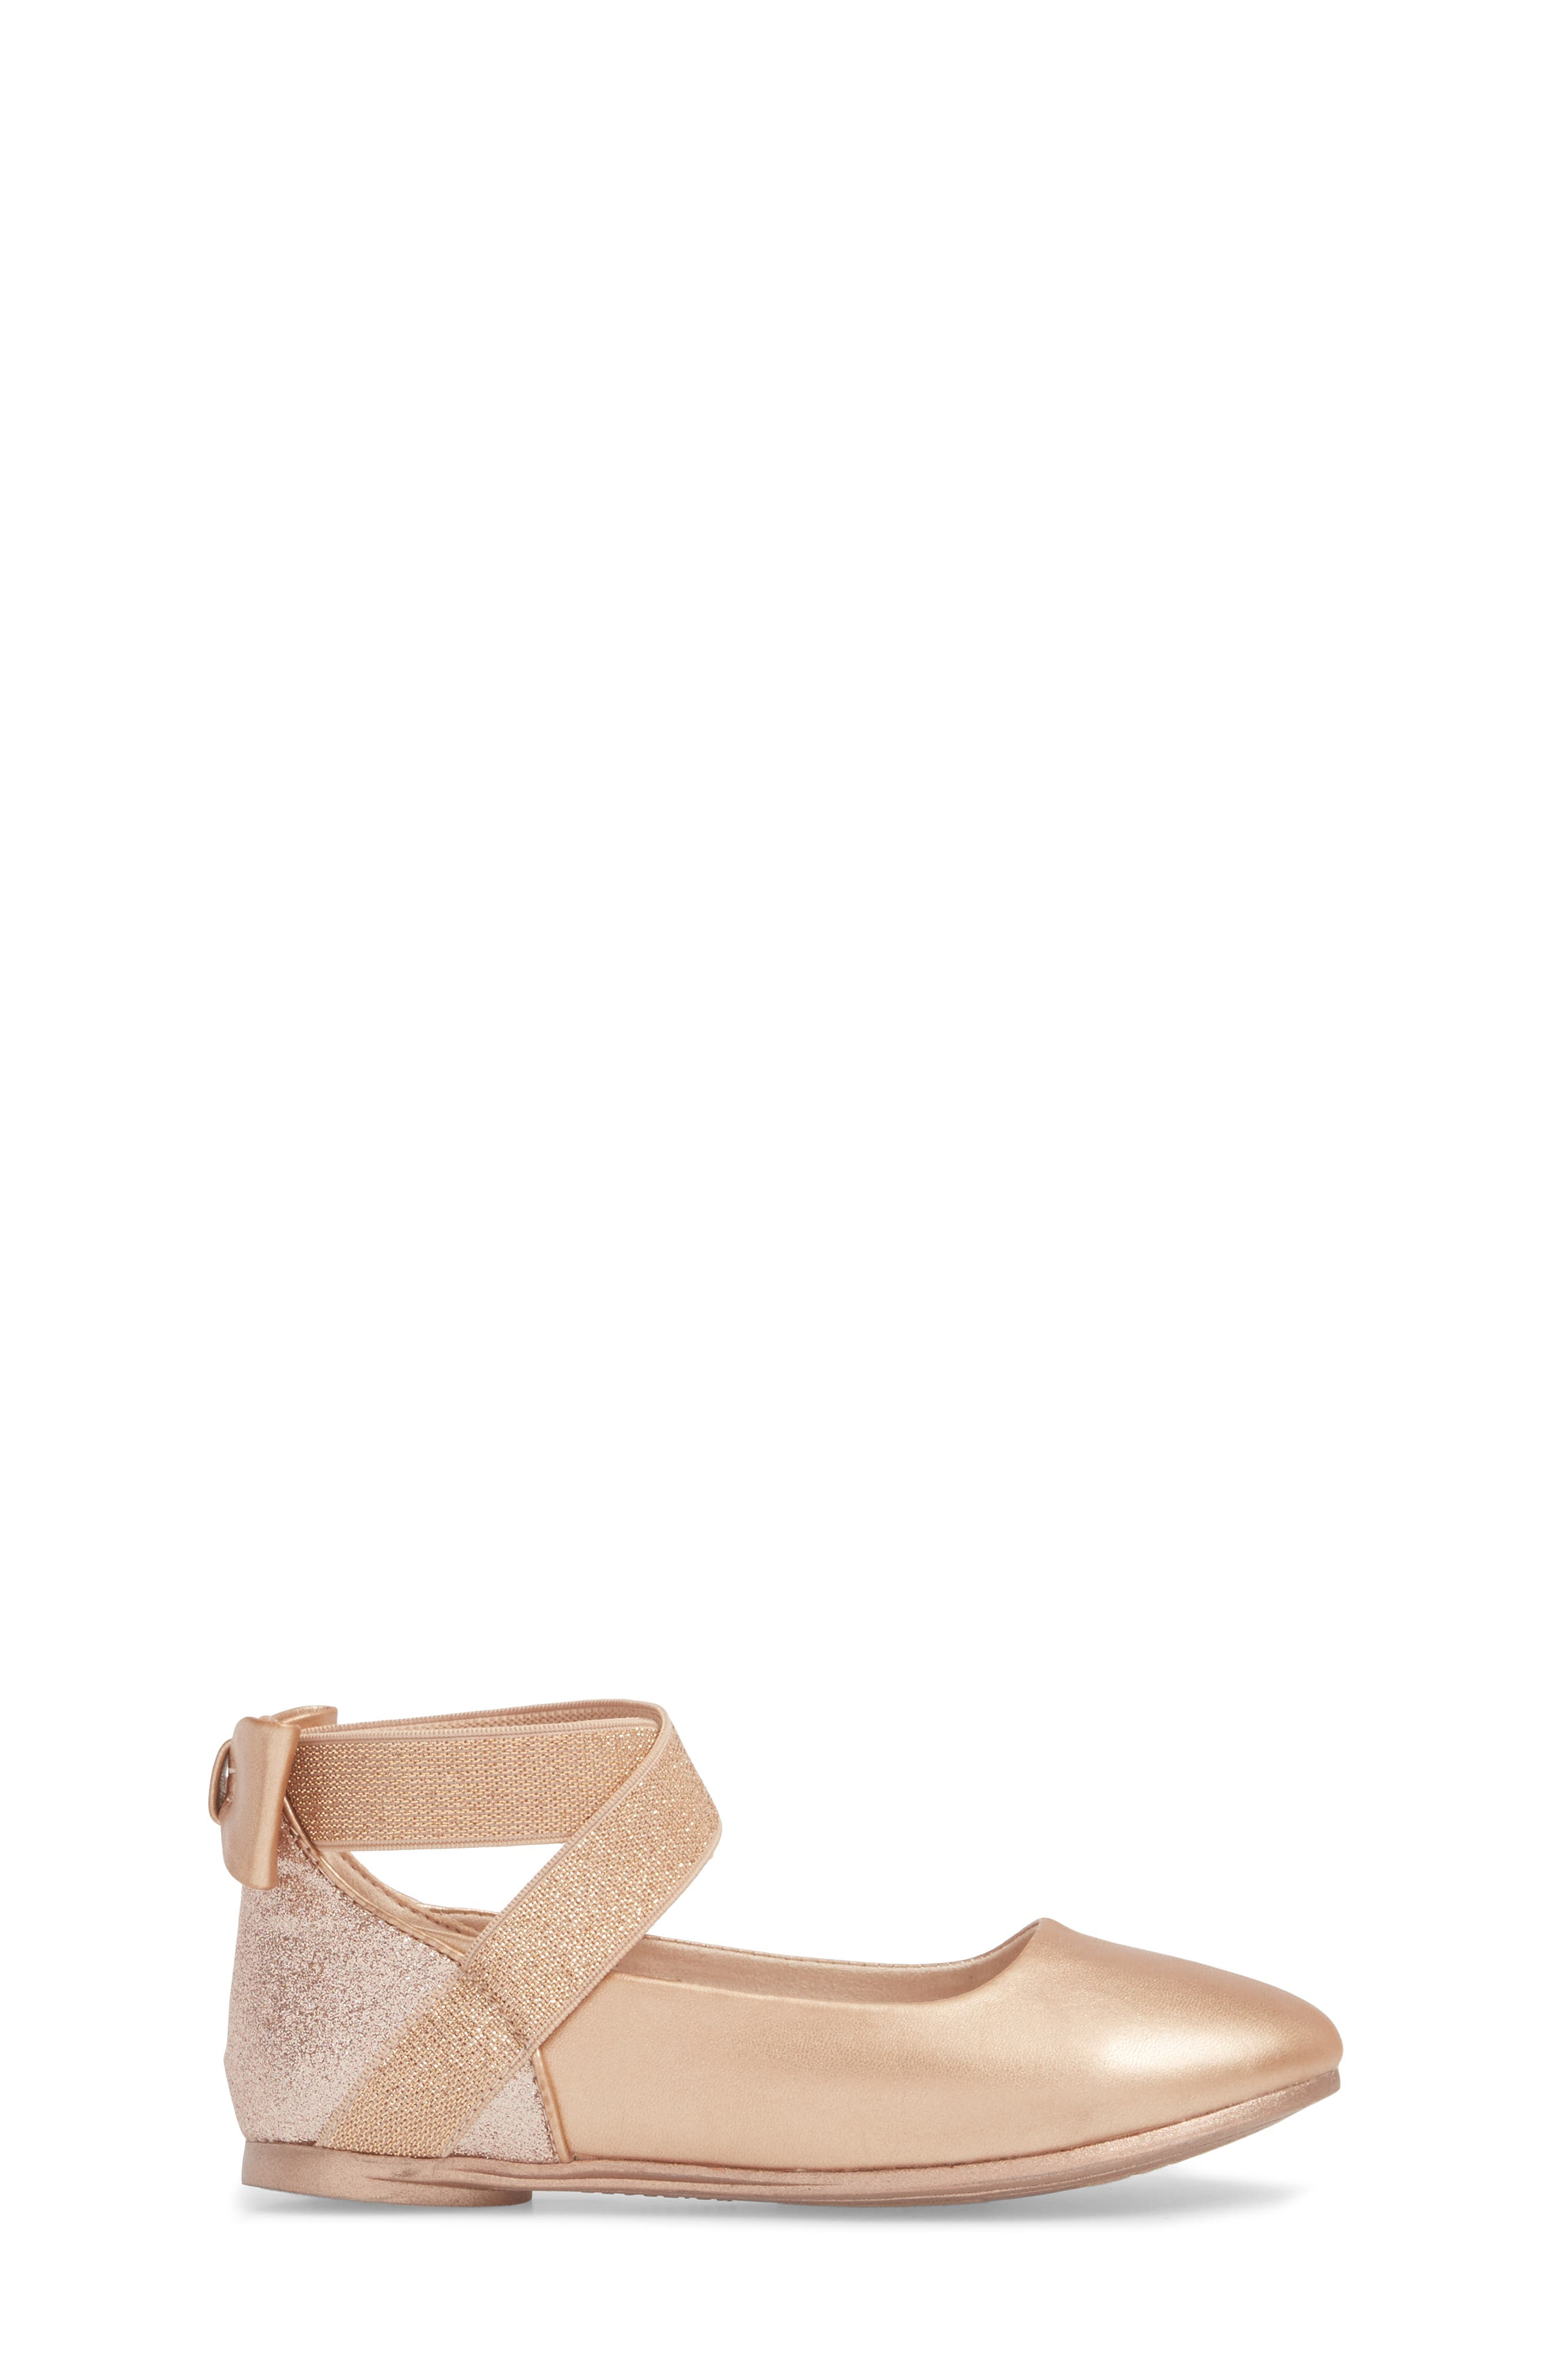 KENNETH COLE NEW YORK, Glitz Flat, Alternate thumbnail 3, color, PALE ROSE